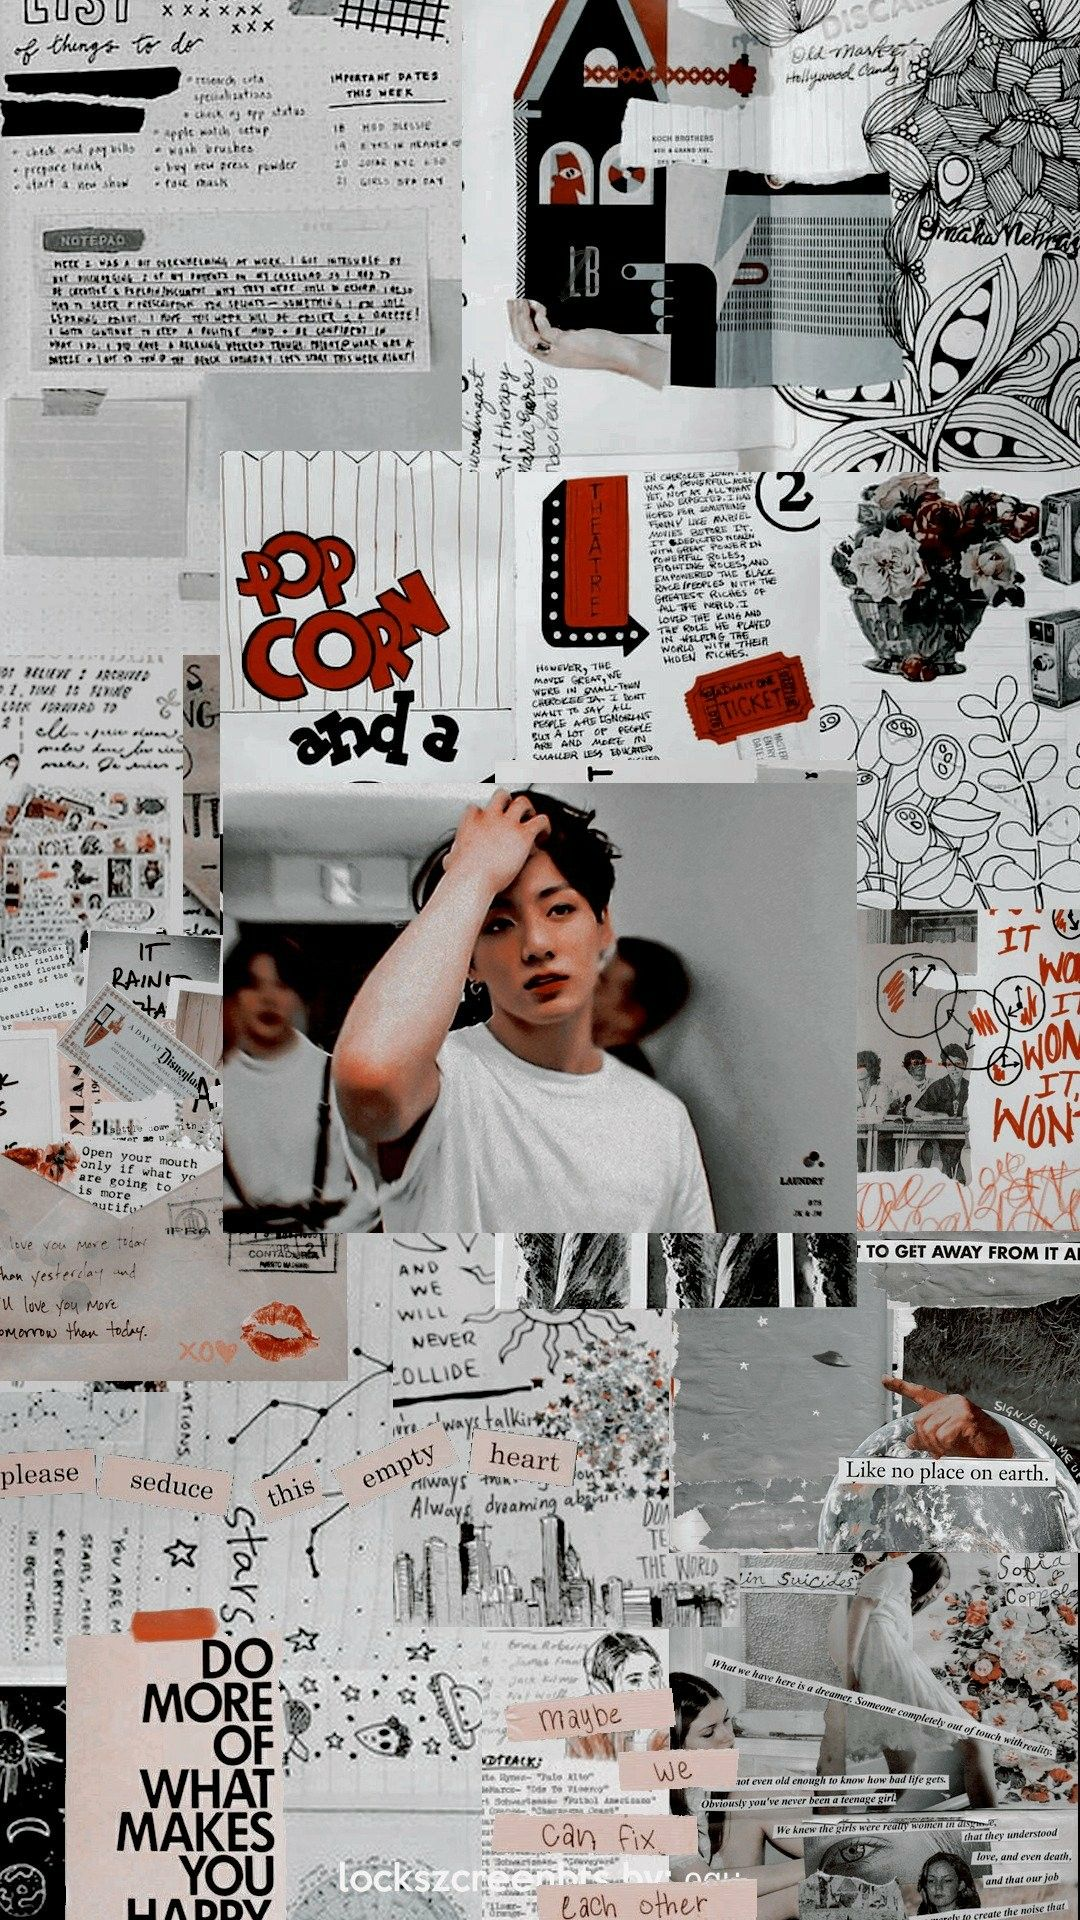 Jungkook Aesthetic Wallpaper / Credits to Twitter